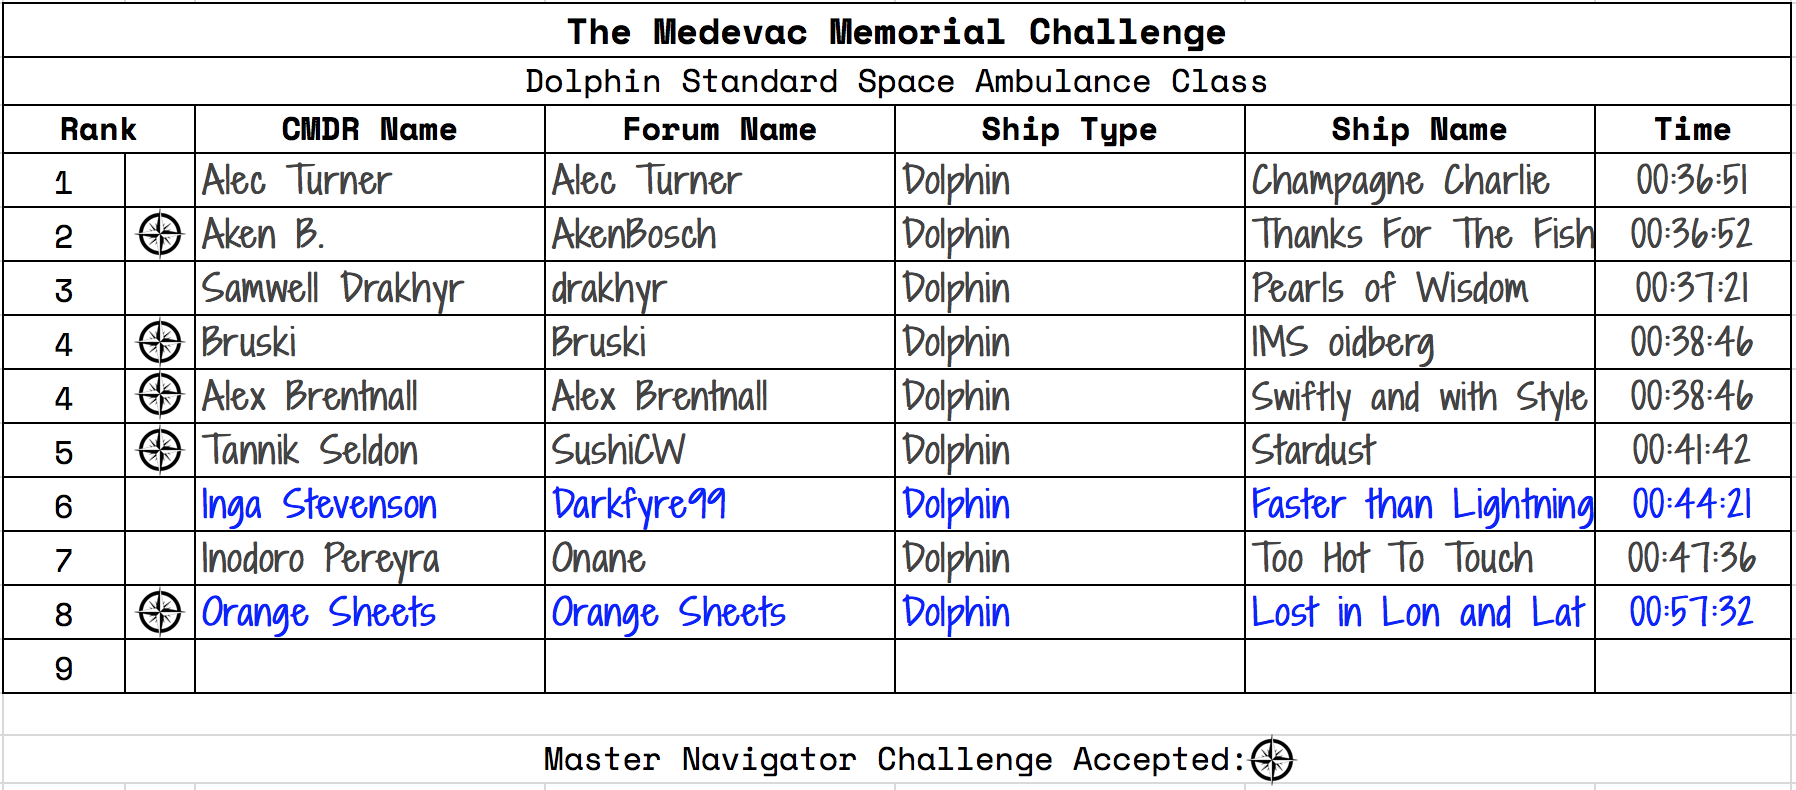 The Medevac Memorial Challenge Results: Dolphin